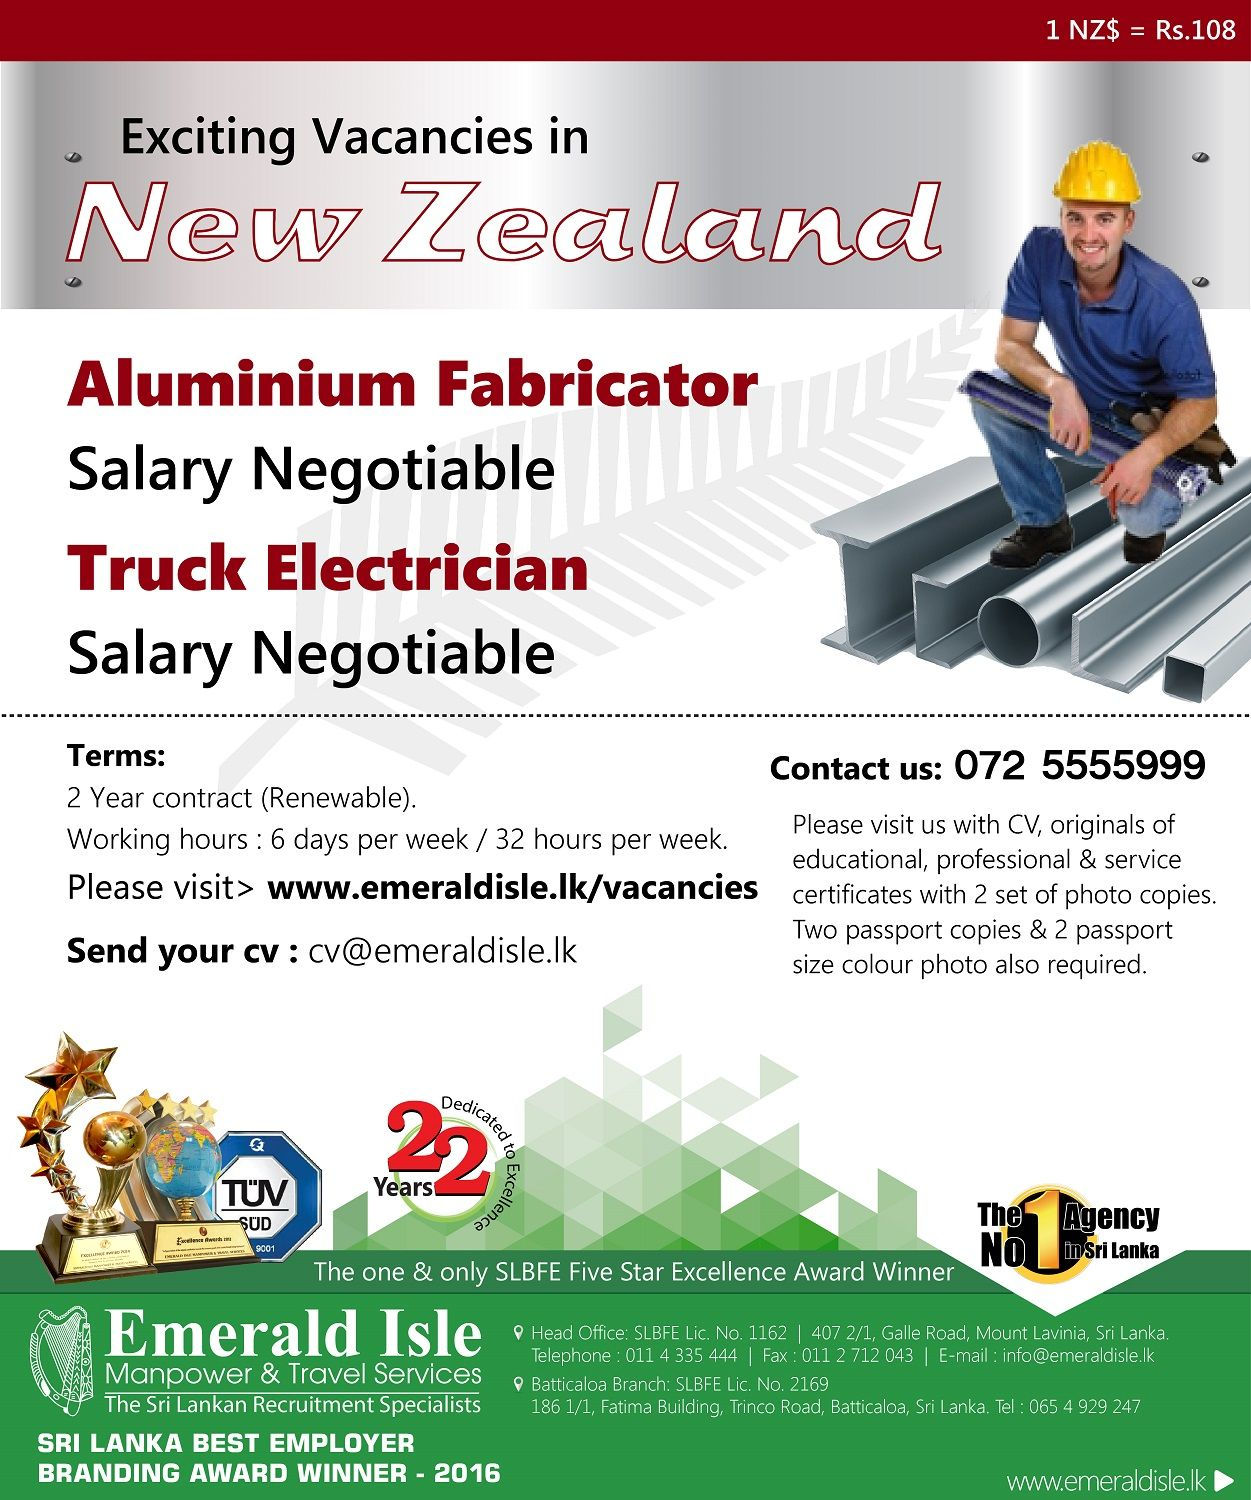 Pin by Emerald Isle Manpower & Travel Services on Foreign Vacancies